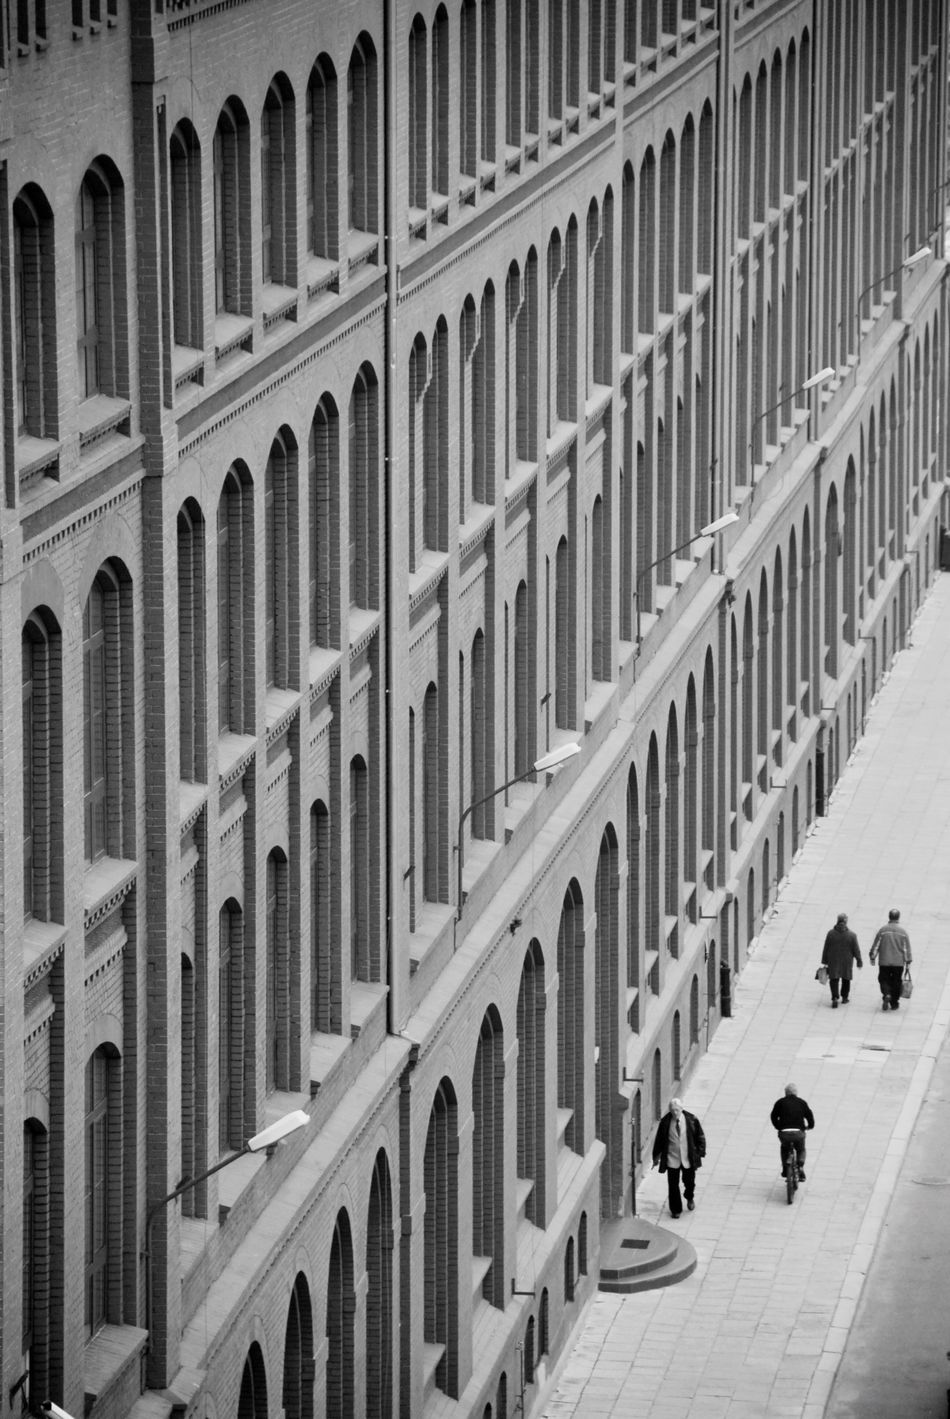 Facade of an old building and small people walking Real People Architecture Built Structure Building Exterior Outdoors Day Arch Façade Facades Facade Building Building Blackandwhite Black And White Perspective Geometry Shape Shapes